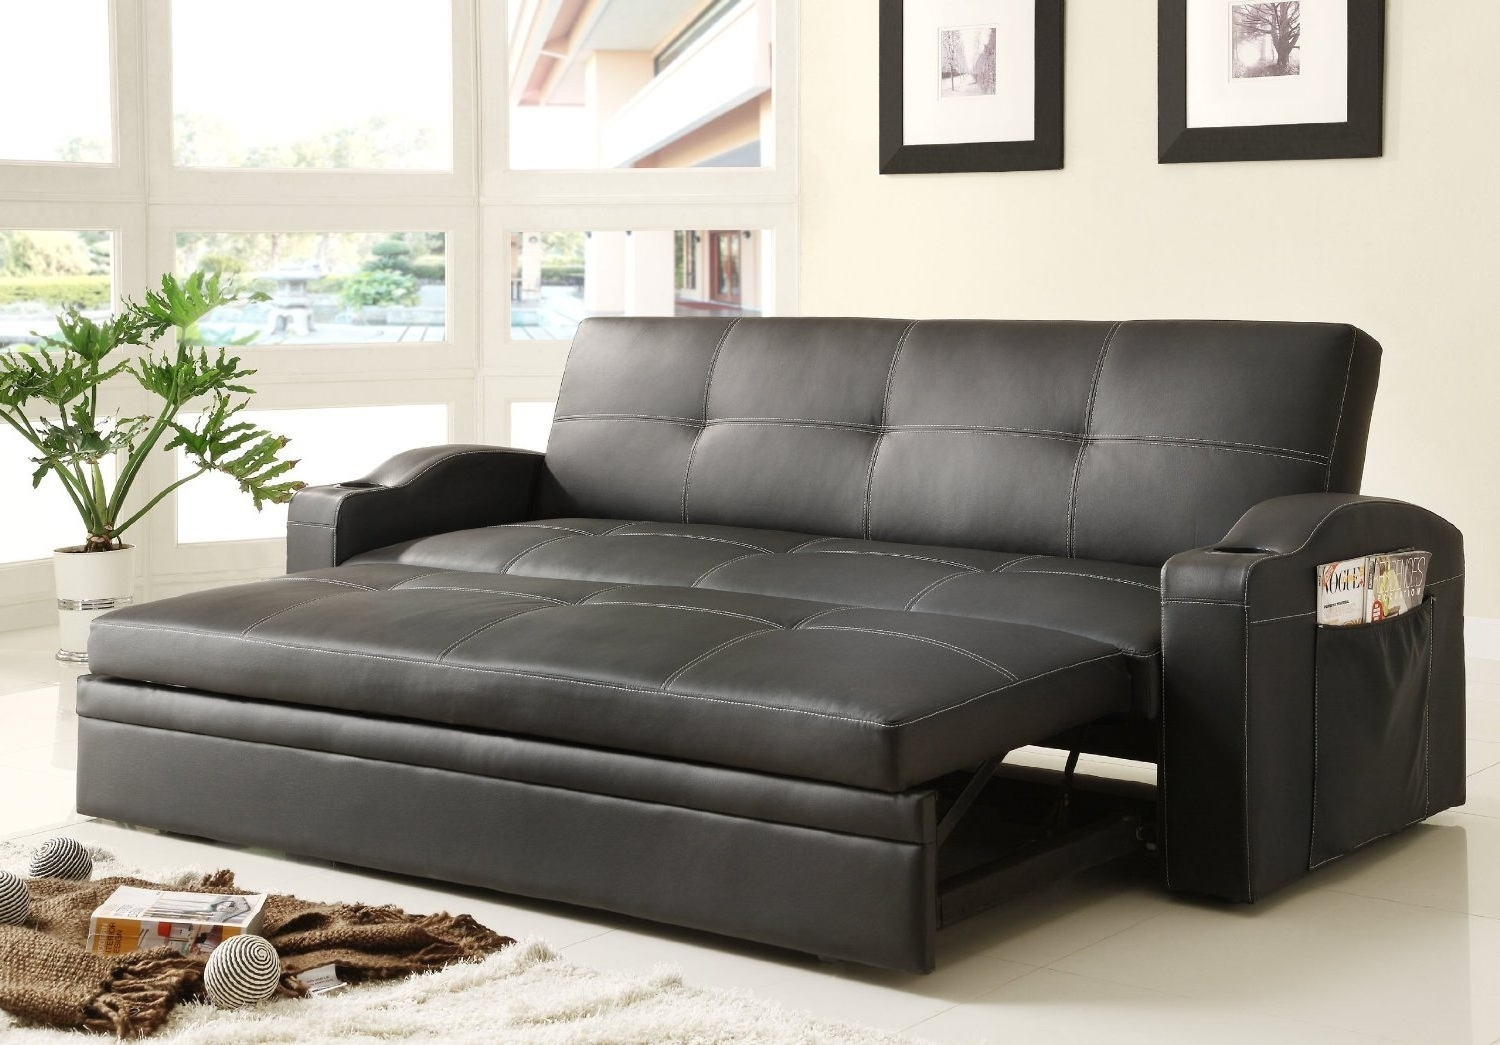 Newest Adjustable Queen Size Sofa Bed Black Color Upholstered In Black Bi Intended For Adjustable Sectional Sofas With Queen Bed (View 2 of 20)